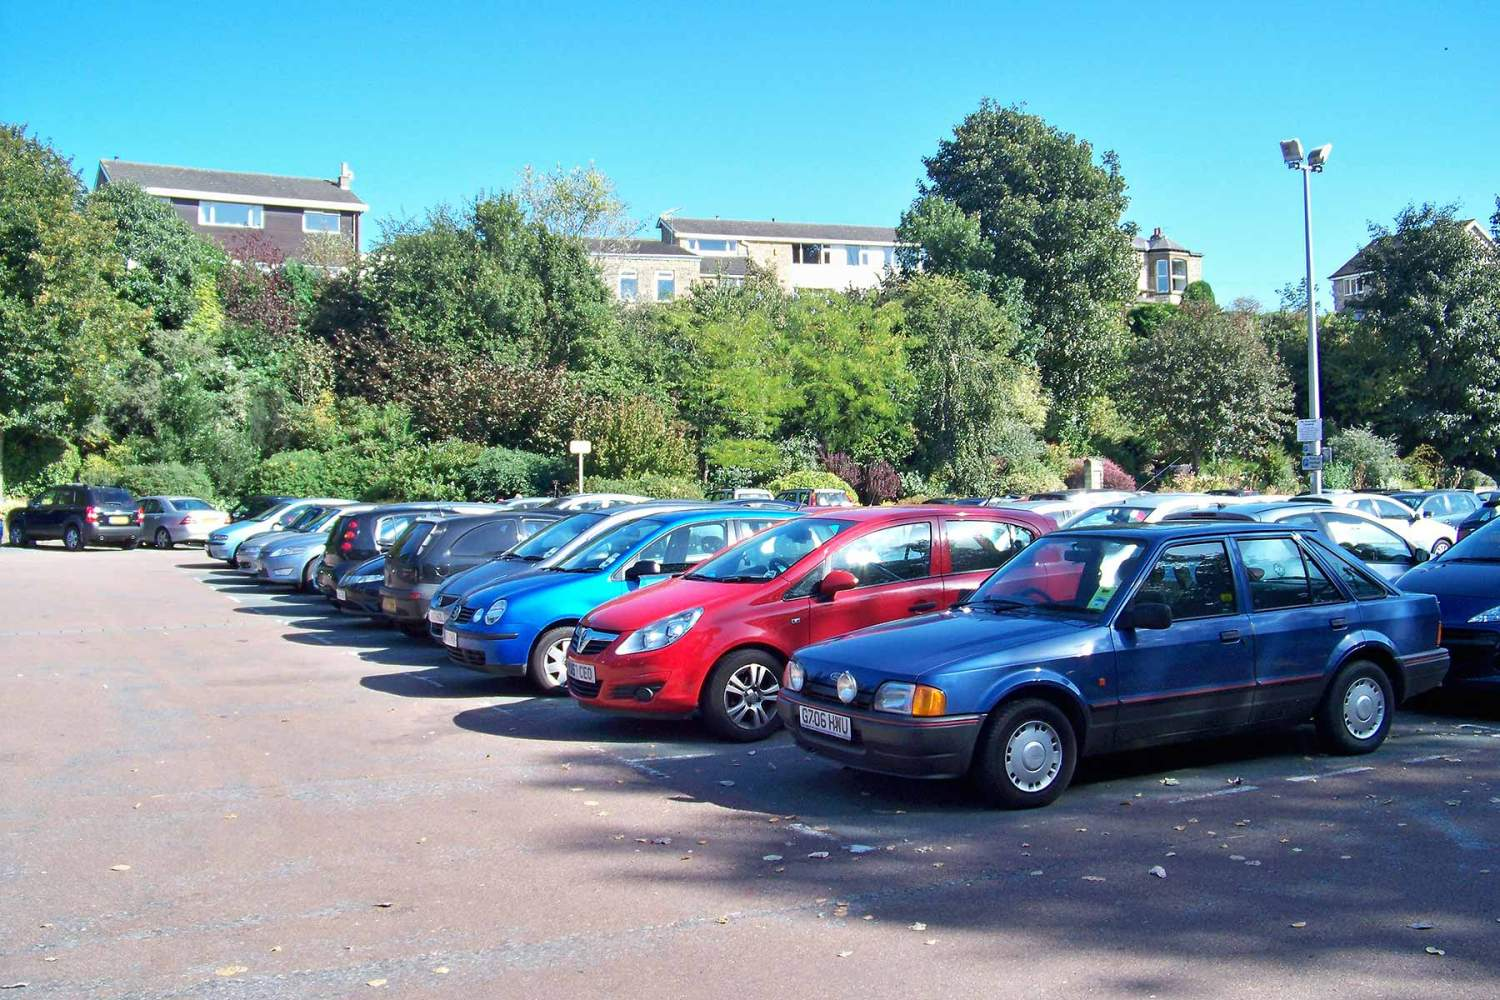 Wilderness car park